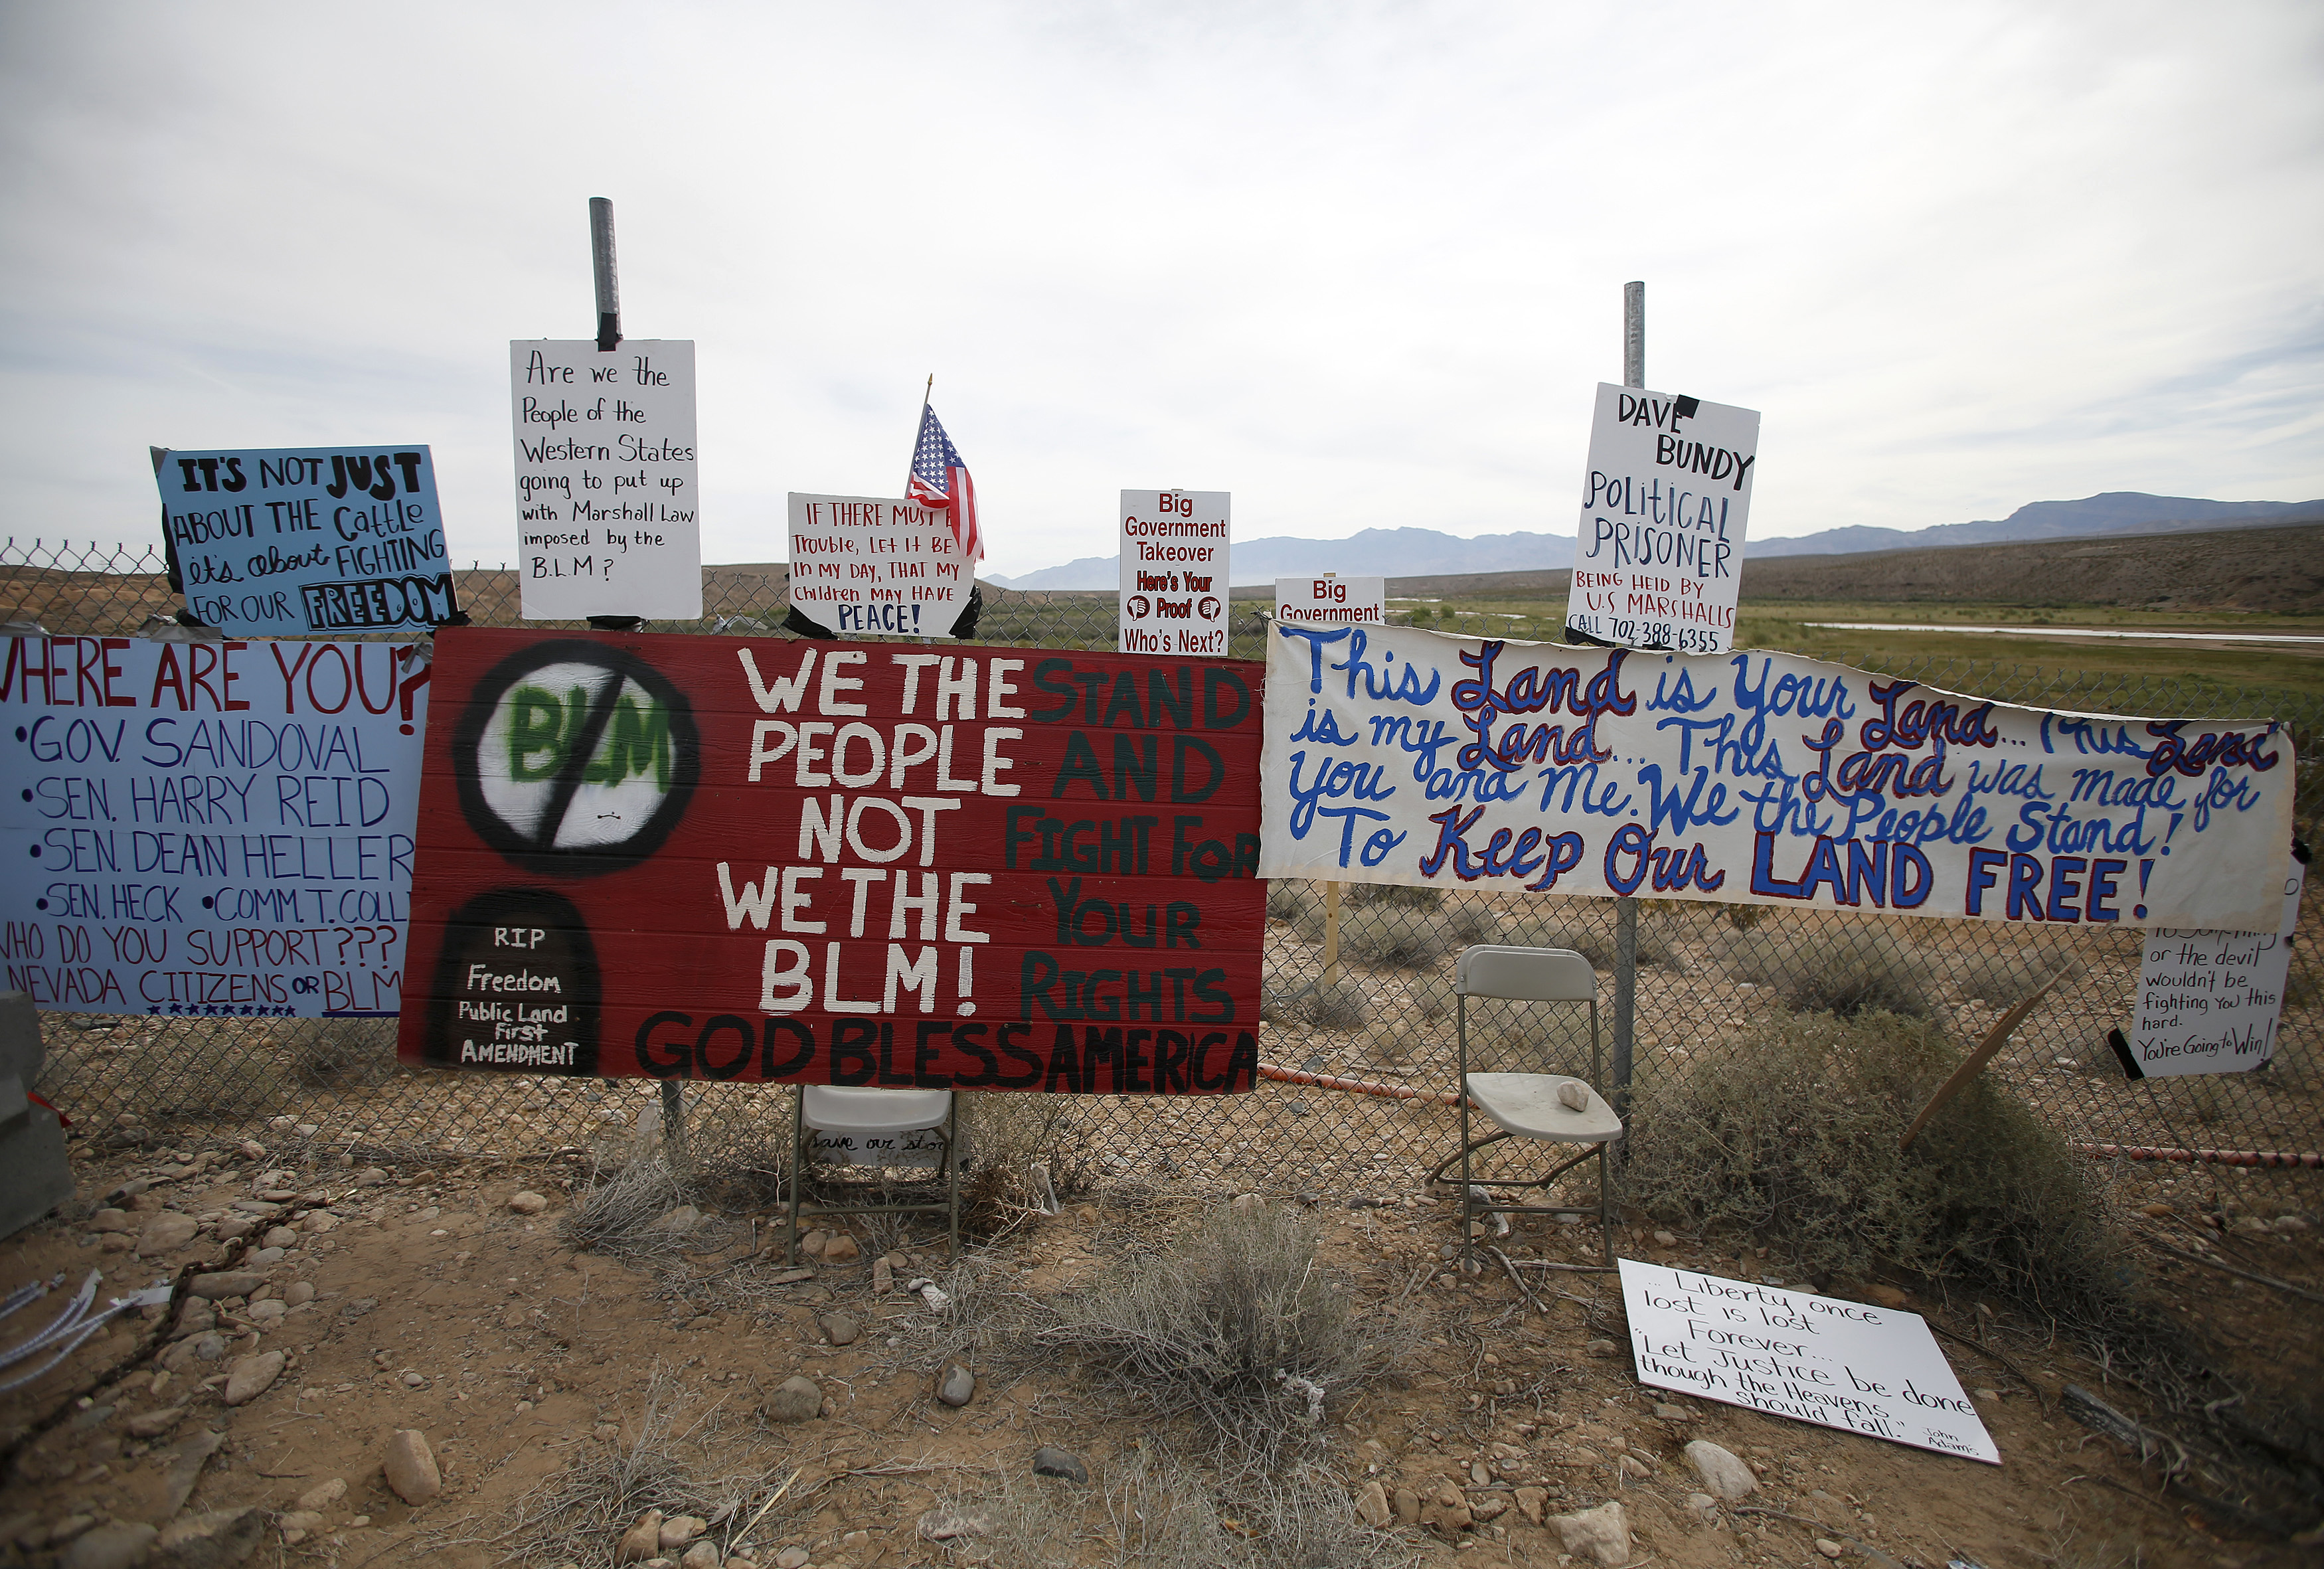 Protest signs are seen on a fence in Bunkerville, Nevada, April 11, 2014. REUTERS/Jim Urquhart